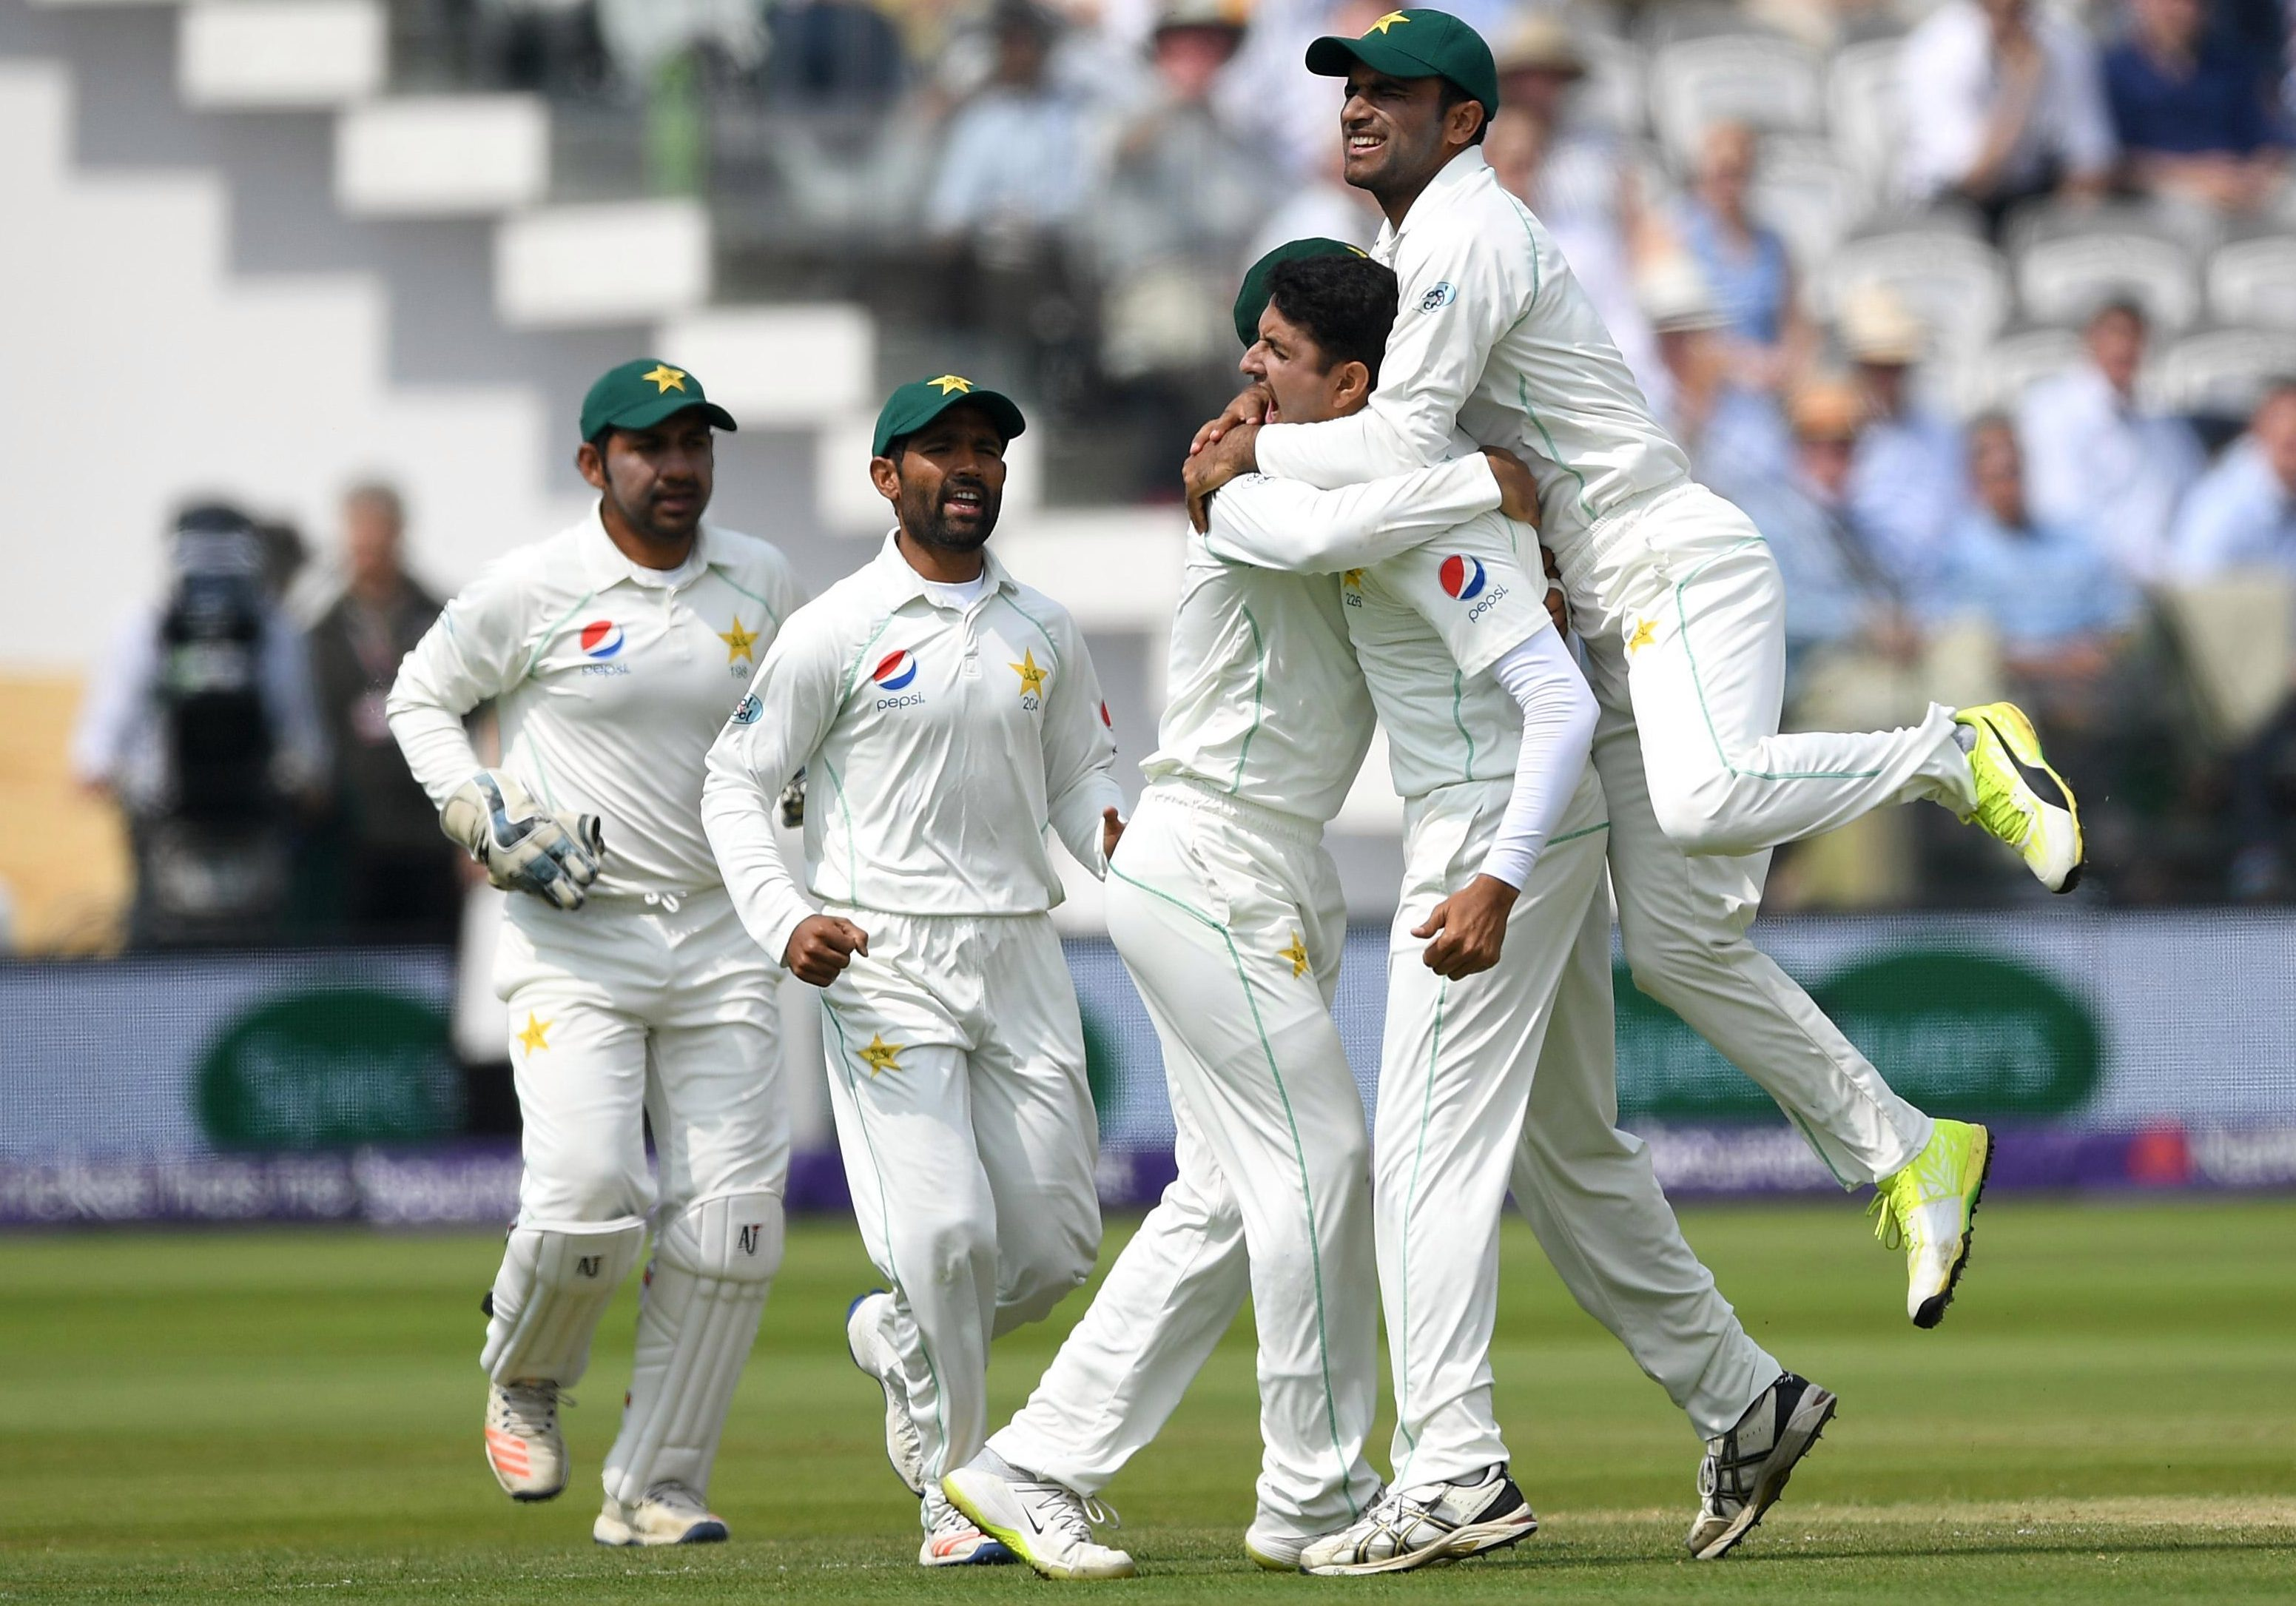 Pakistan bowled brilliantly to go through the England tail as they cruised to victory in the First Test